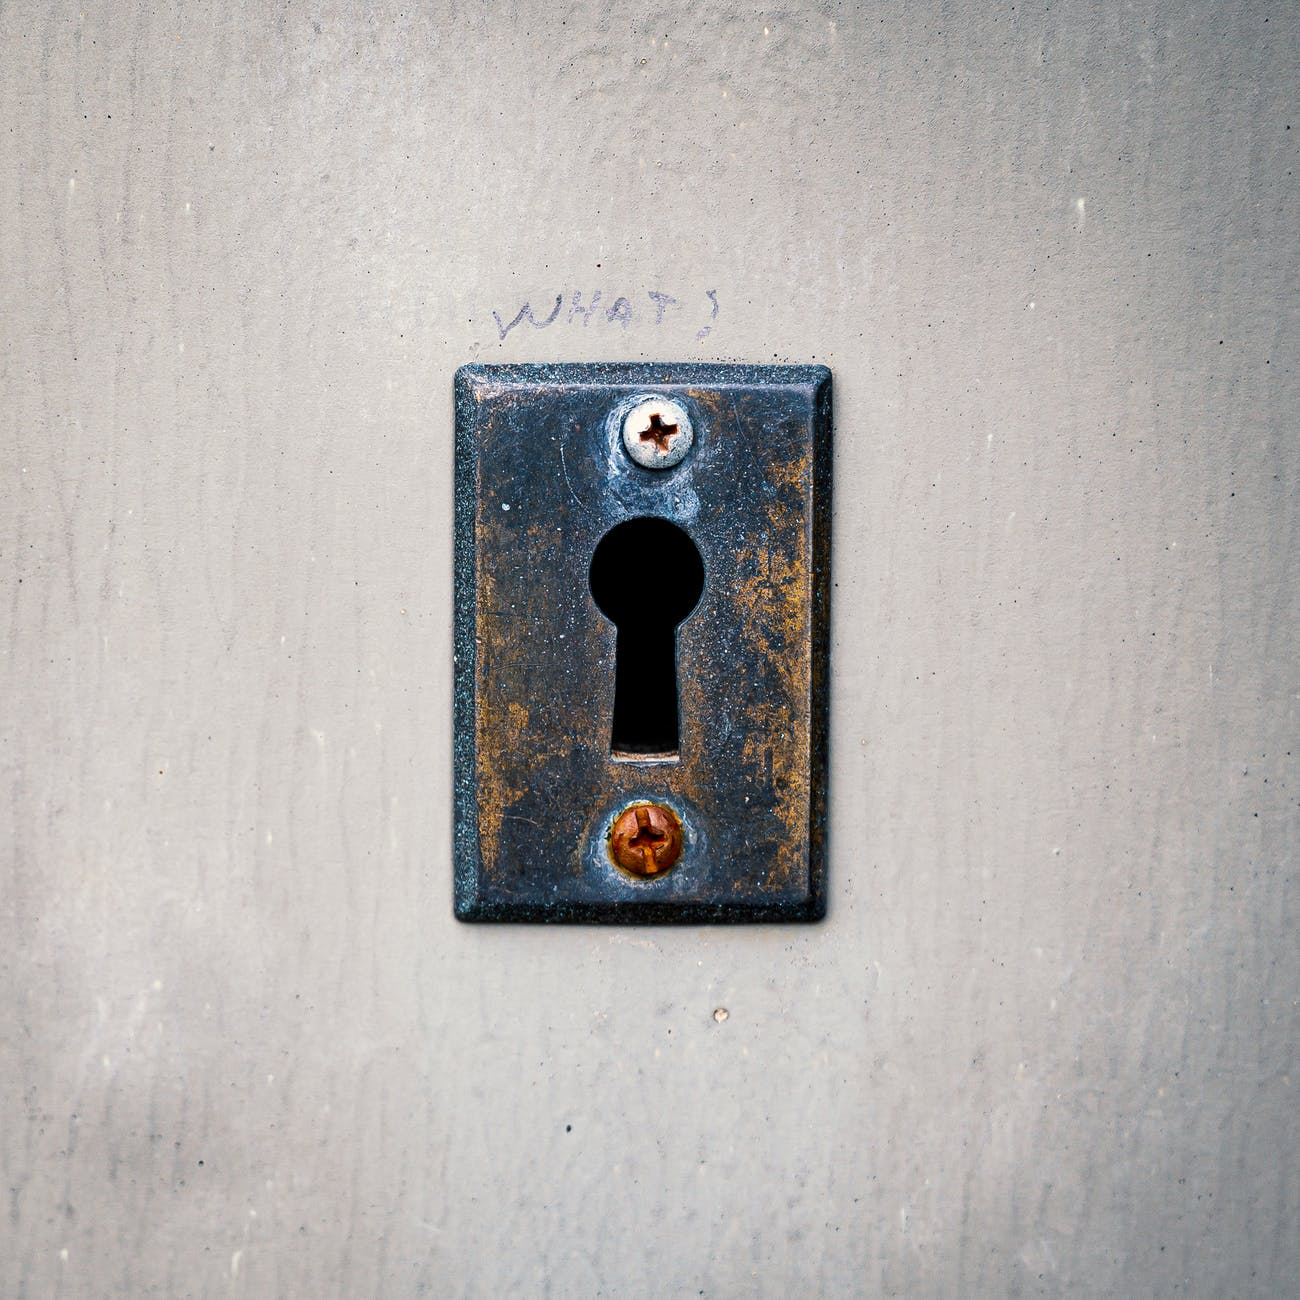 rusty keyhole with screws on concrete wall